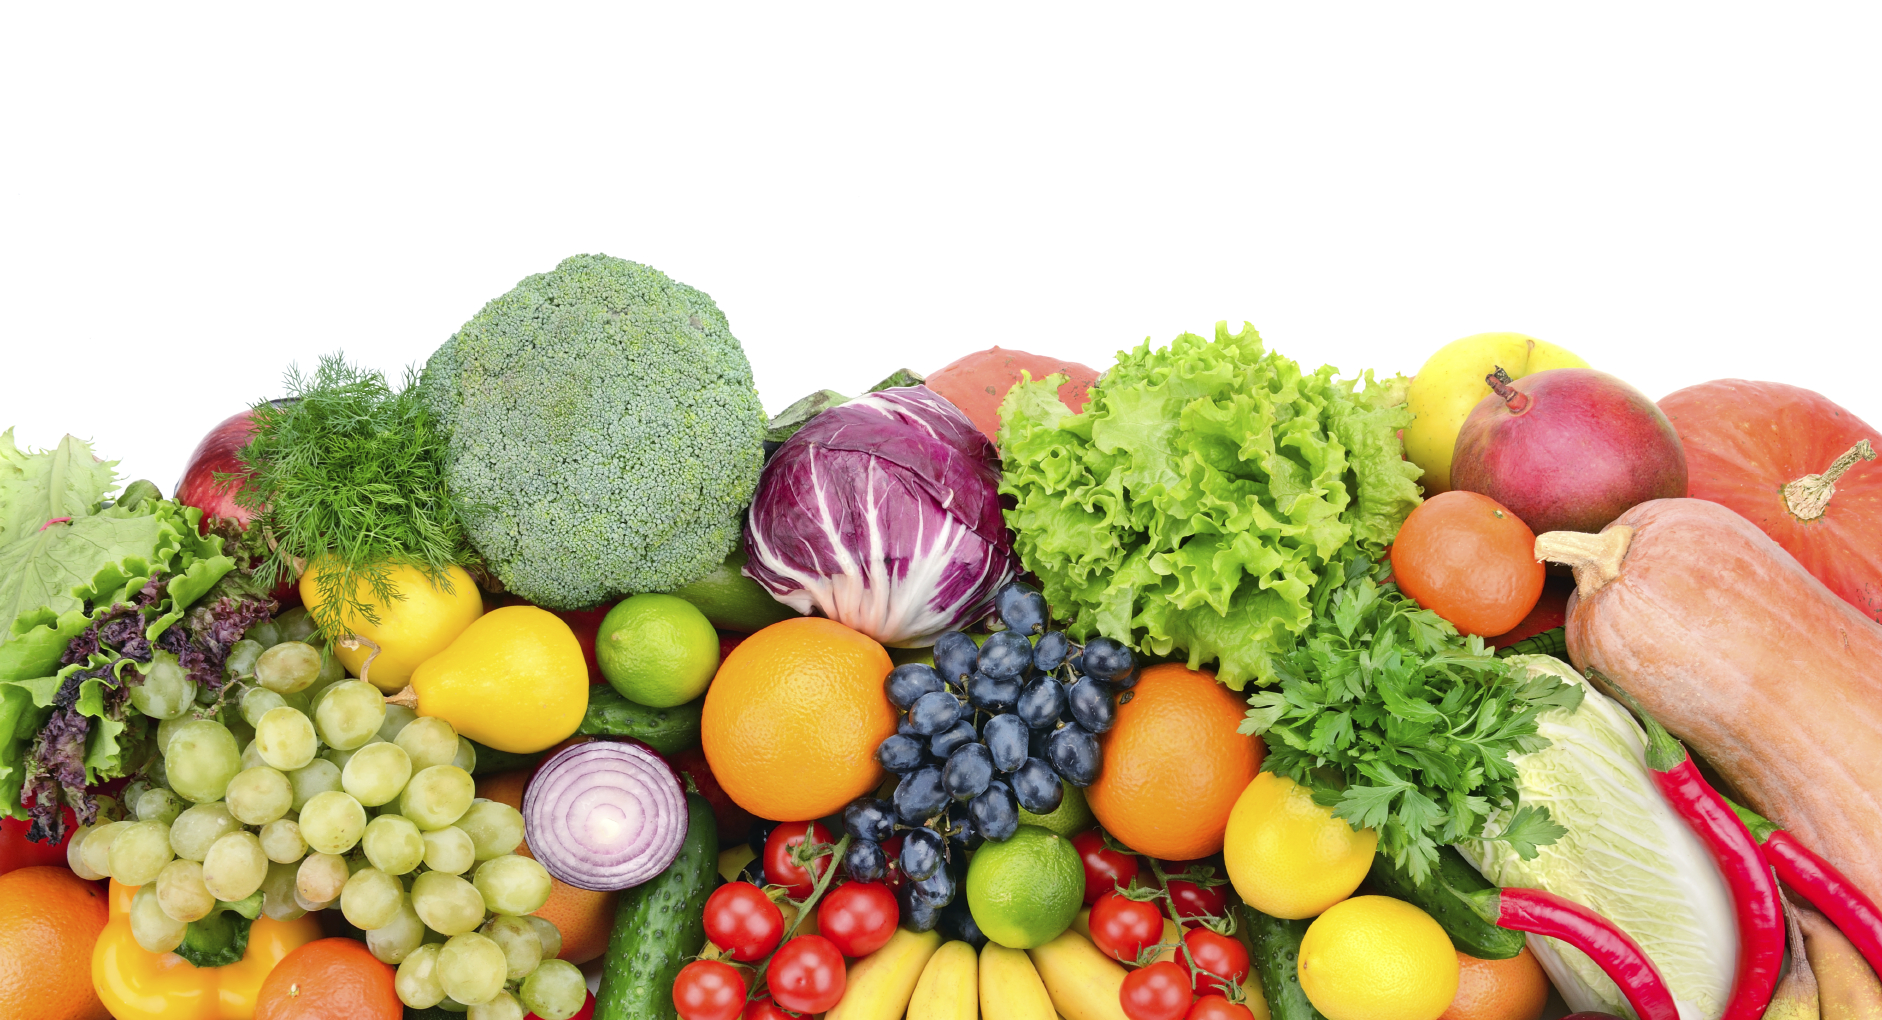 Fruits and Veggies can boost your heart health: Study